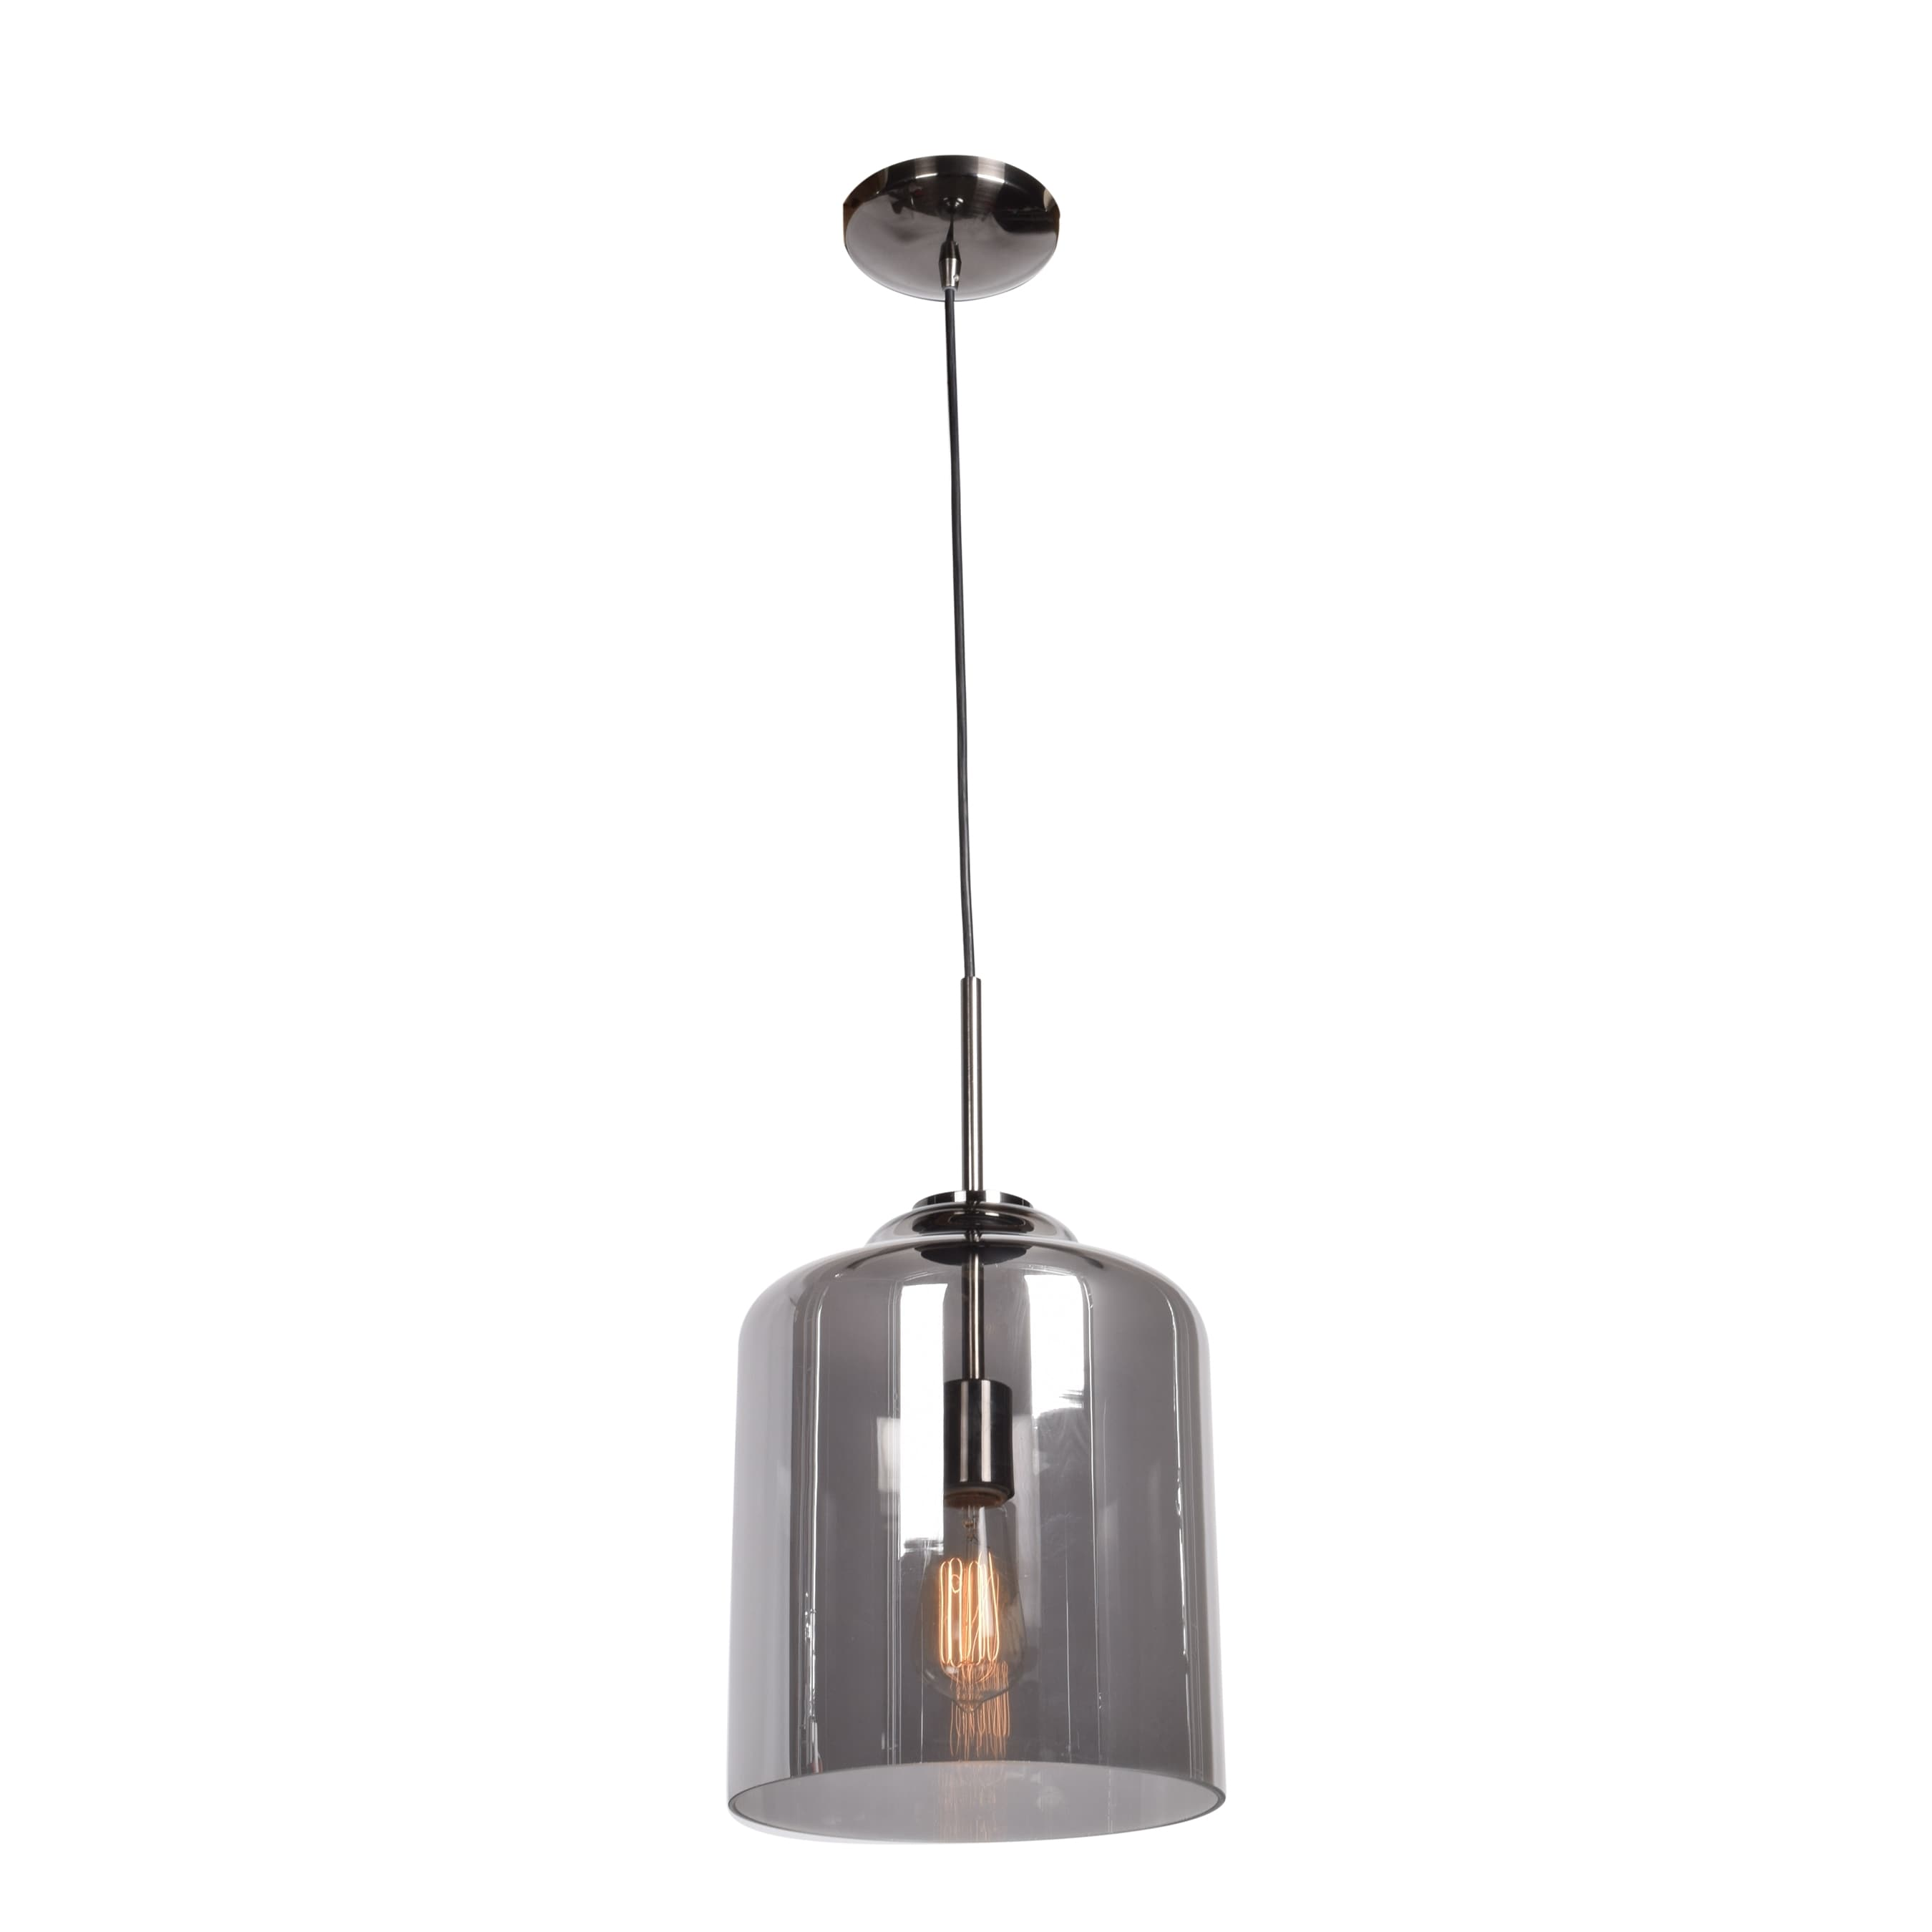 Access Lighting Simplicite Black Chrome Cylinder Pendant With Smoke Mirror Gl Shade Free Shipping Today 16048782